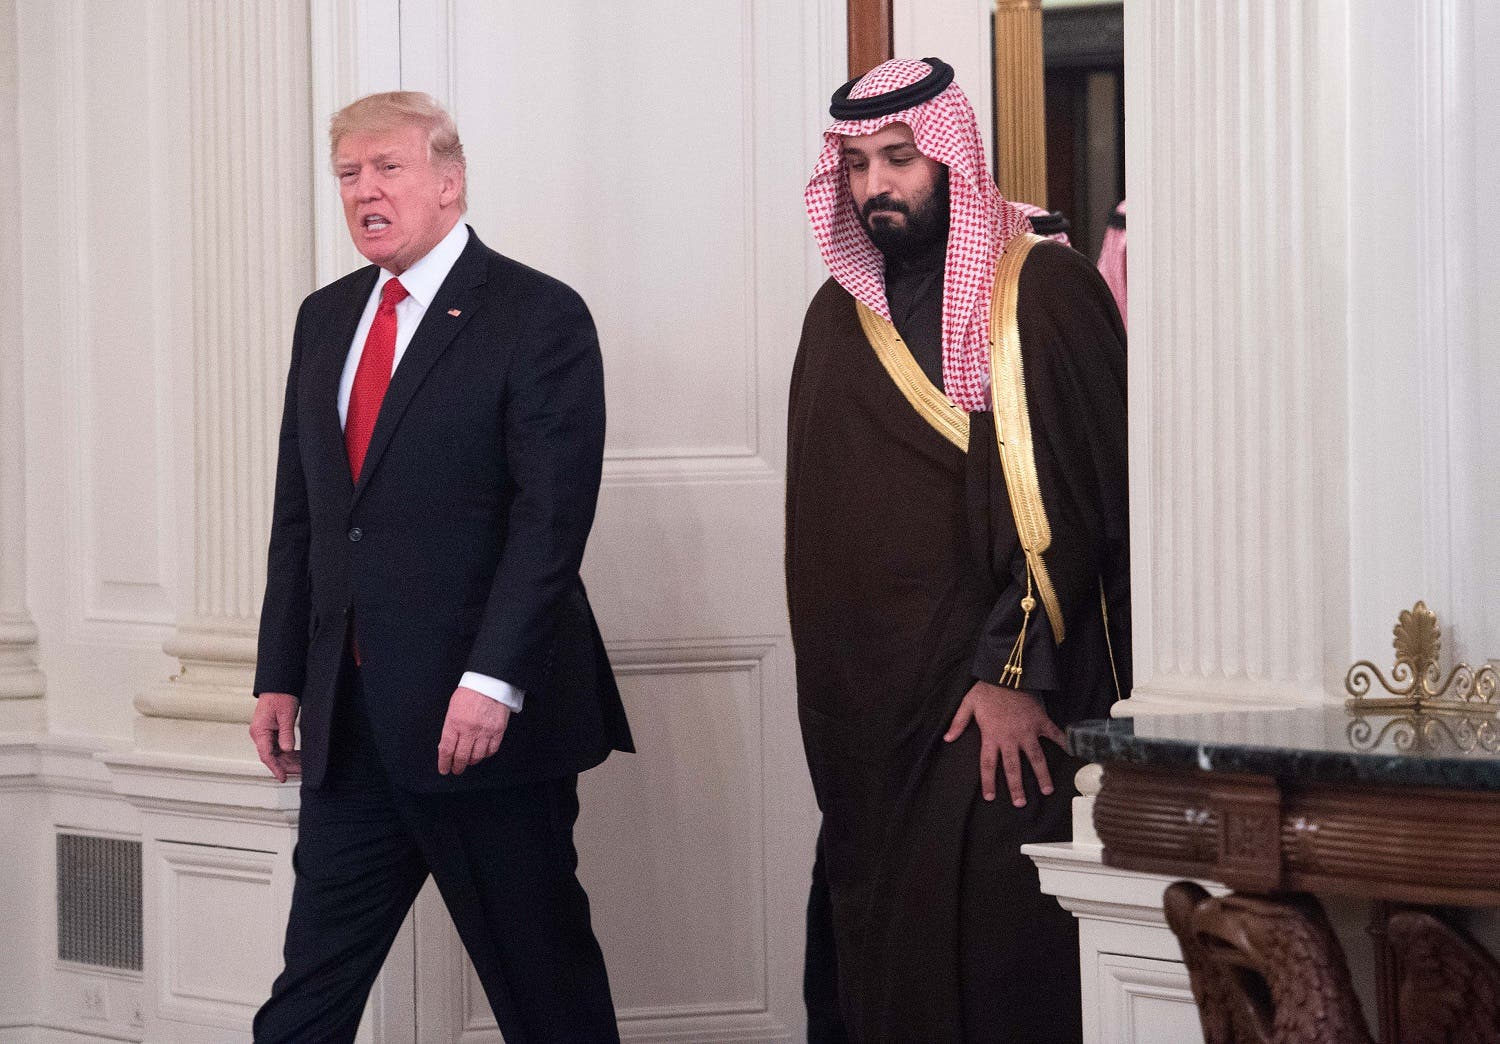 Donald Trump and Saudi Deputy Crown Prince Mohammed bin Salman enter the State Dining Room before lunch at the White House in Washington, DC, on March 14, 2017. (File photo: AFP)